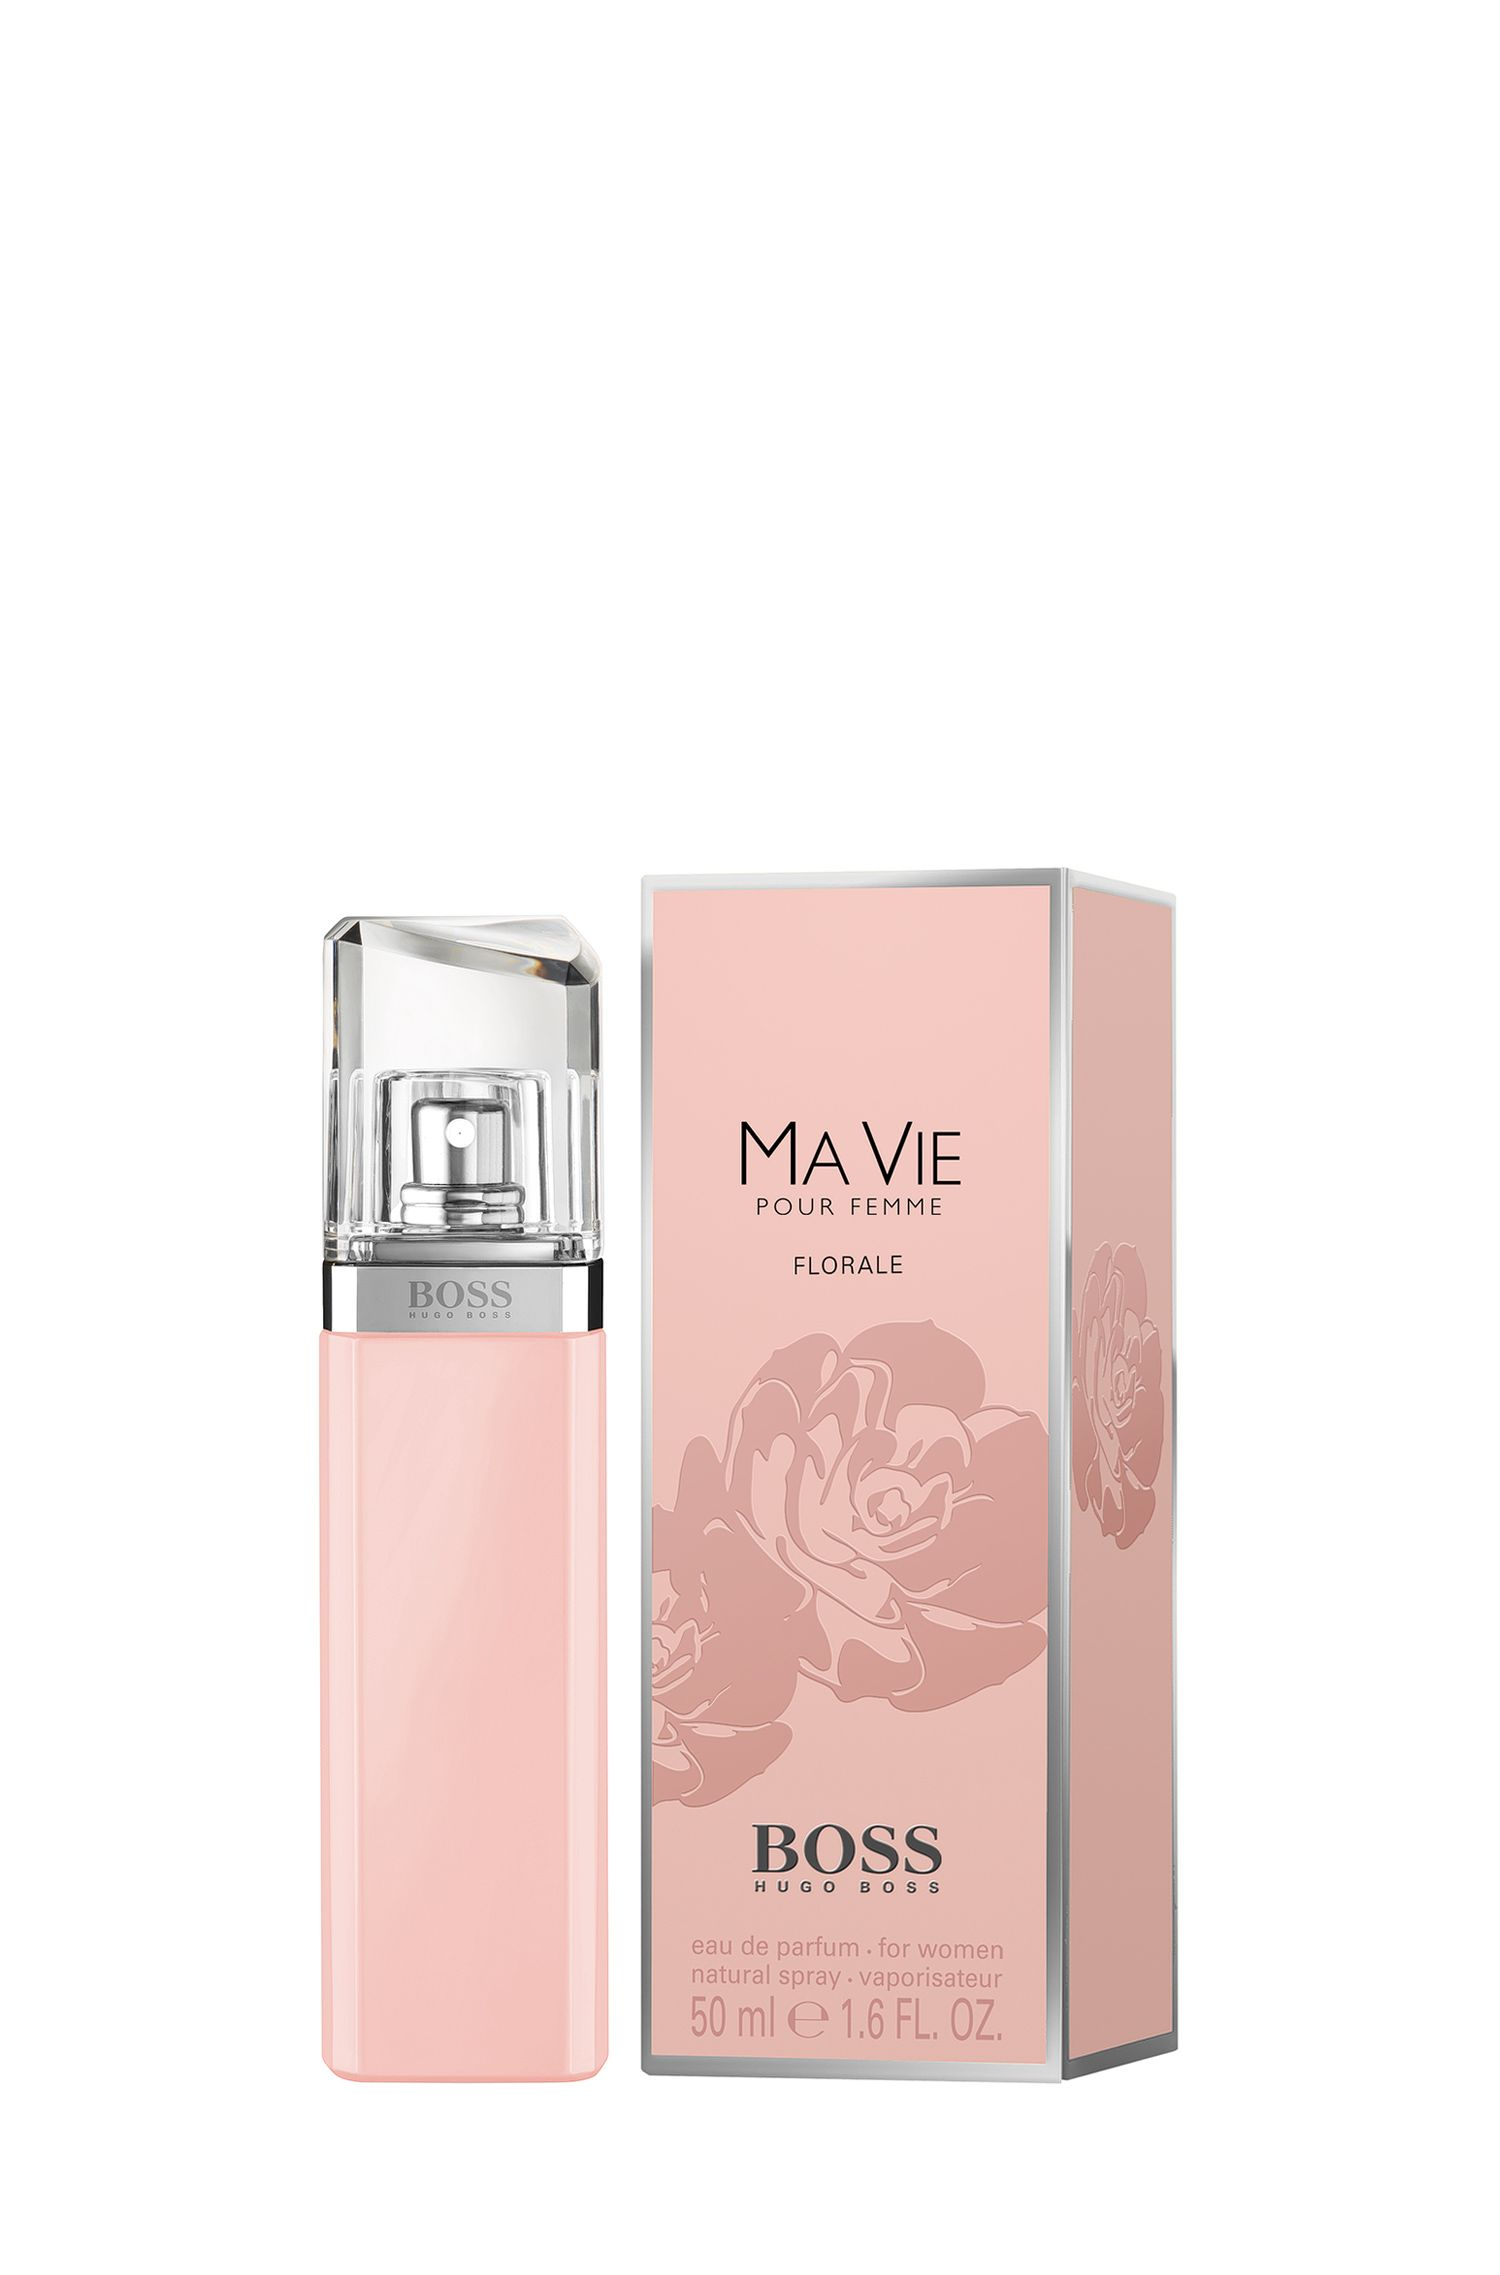 Eau de parfum BOSS Ma Vie Florale 50 ml, Assorted-Pre-Pack